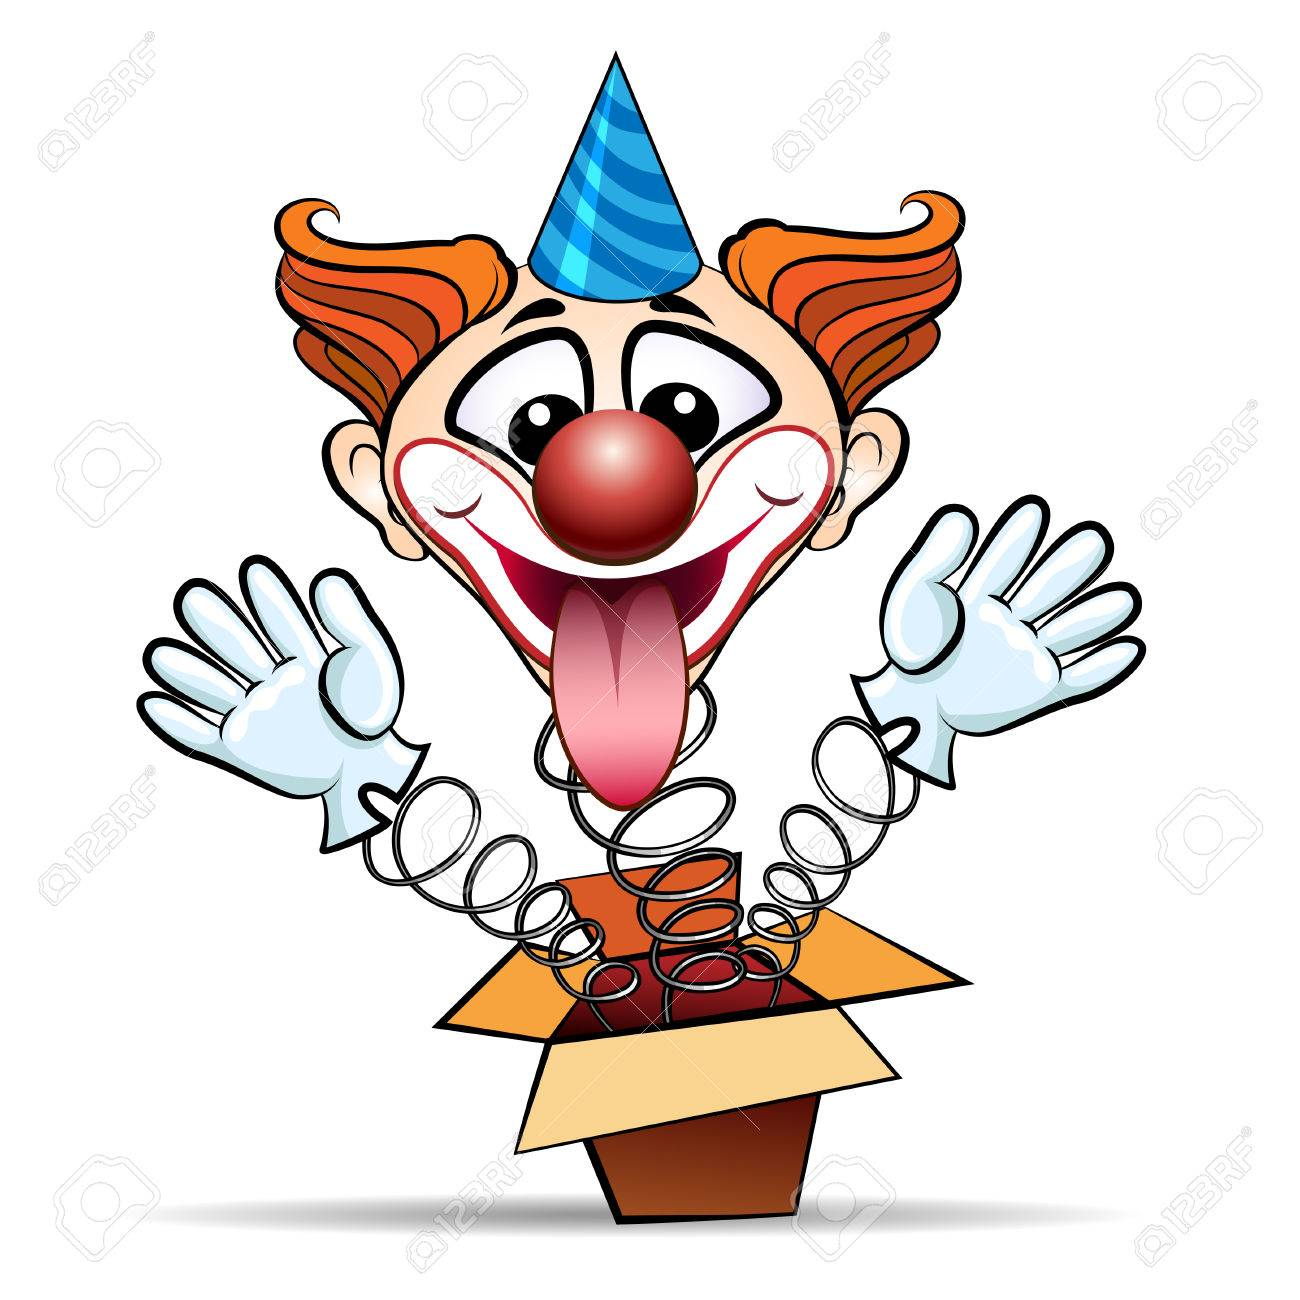 Funny illustration of laugthing clown jumps out of surprised box. Isolated on white background. - 42133284